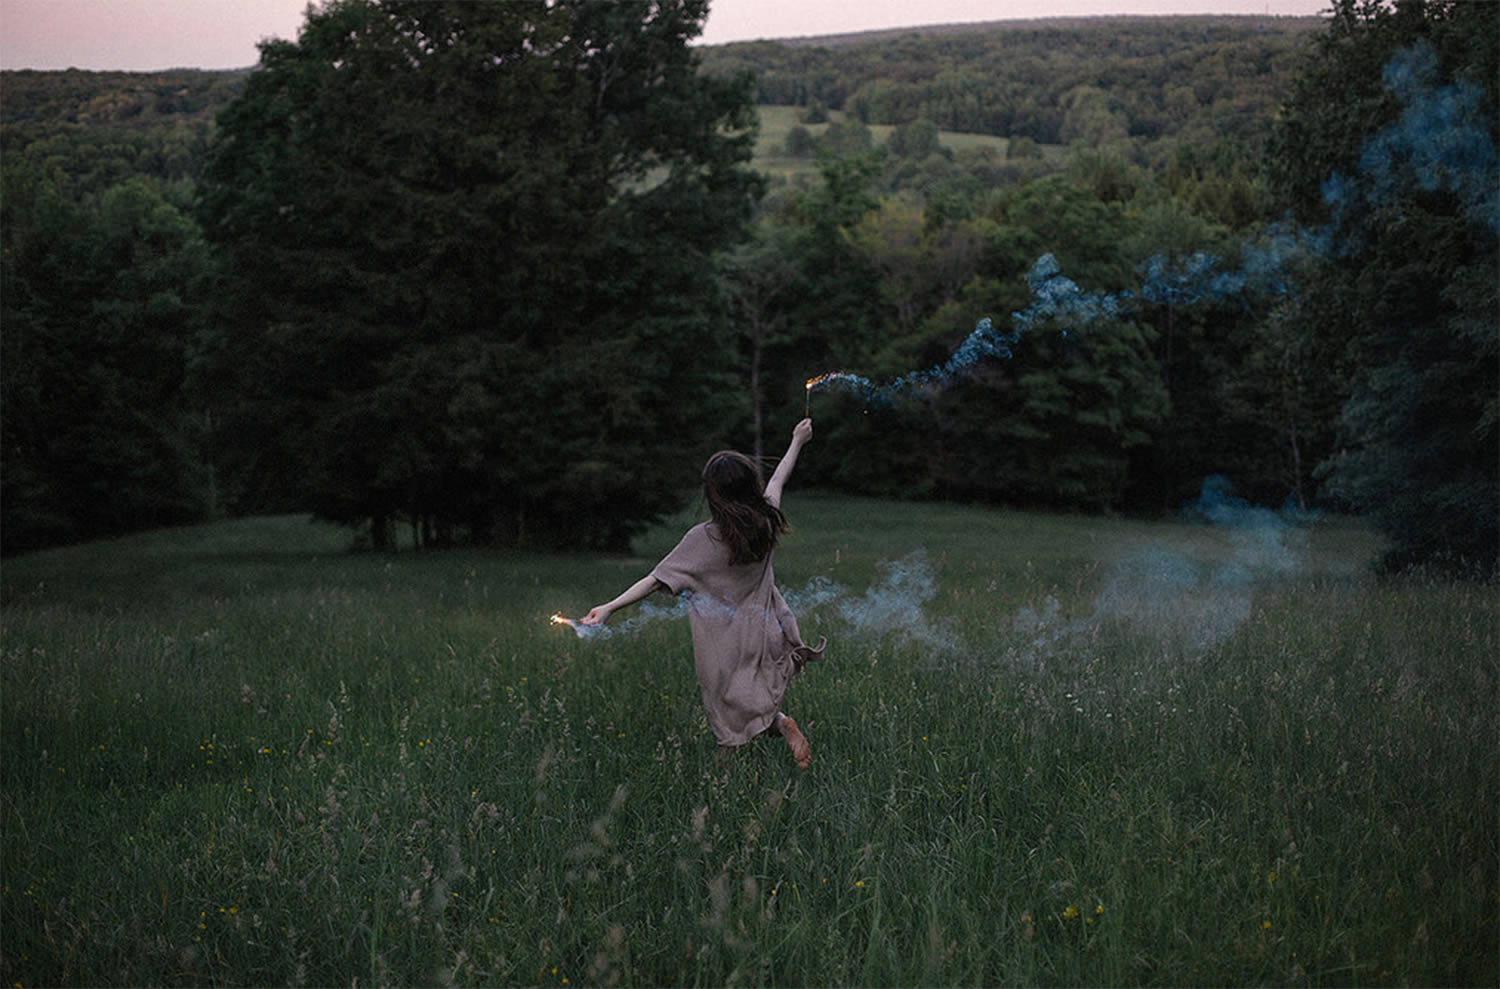 girl running through field, photo by alex currie